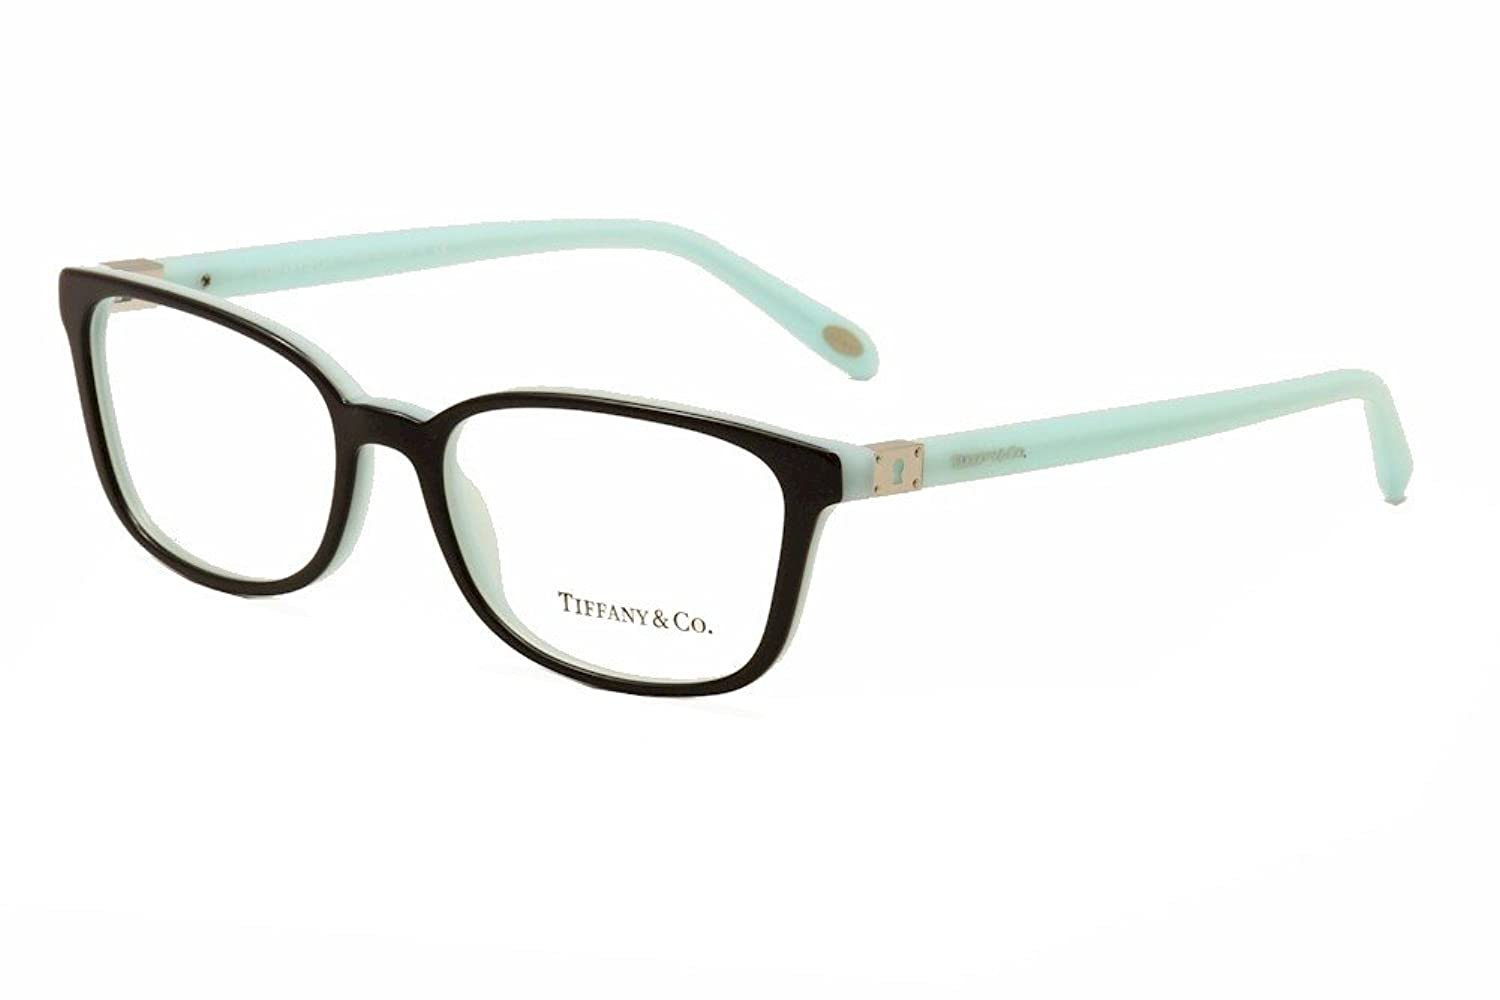 Amazon.com: TIFFANY Eyeglasses TF 2094 8055 Black/Blue 54MM: Clothing